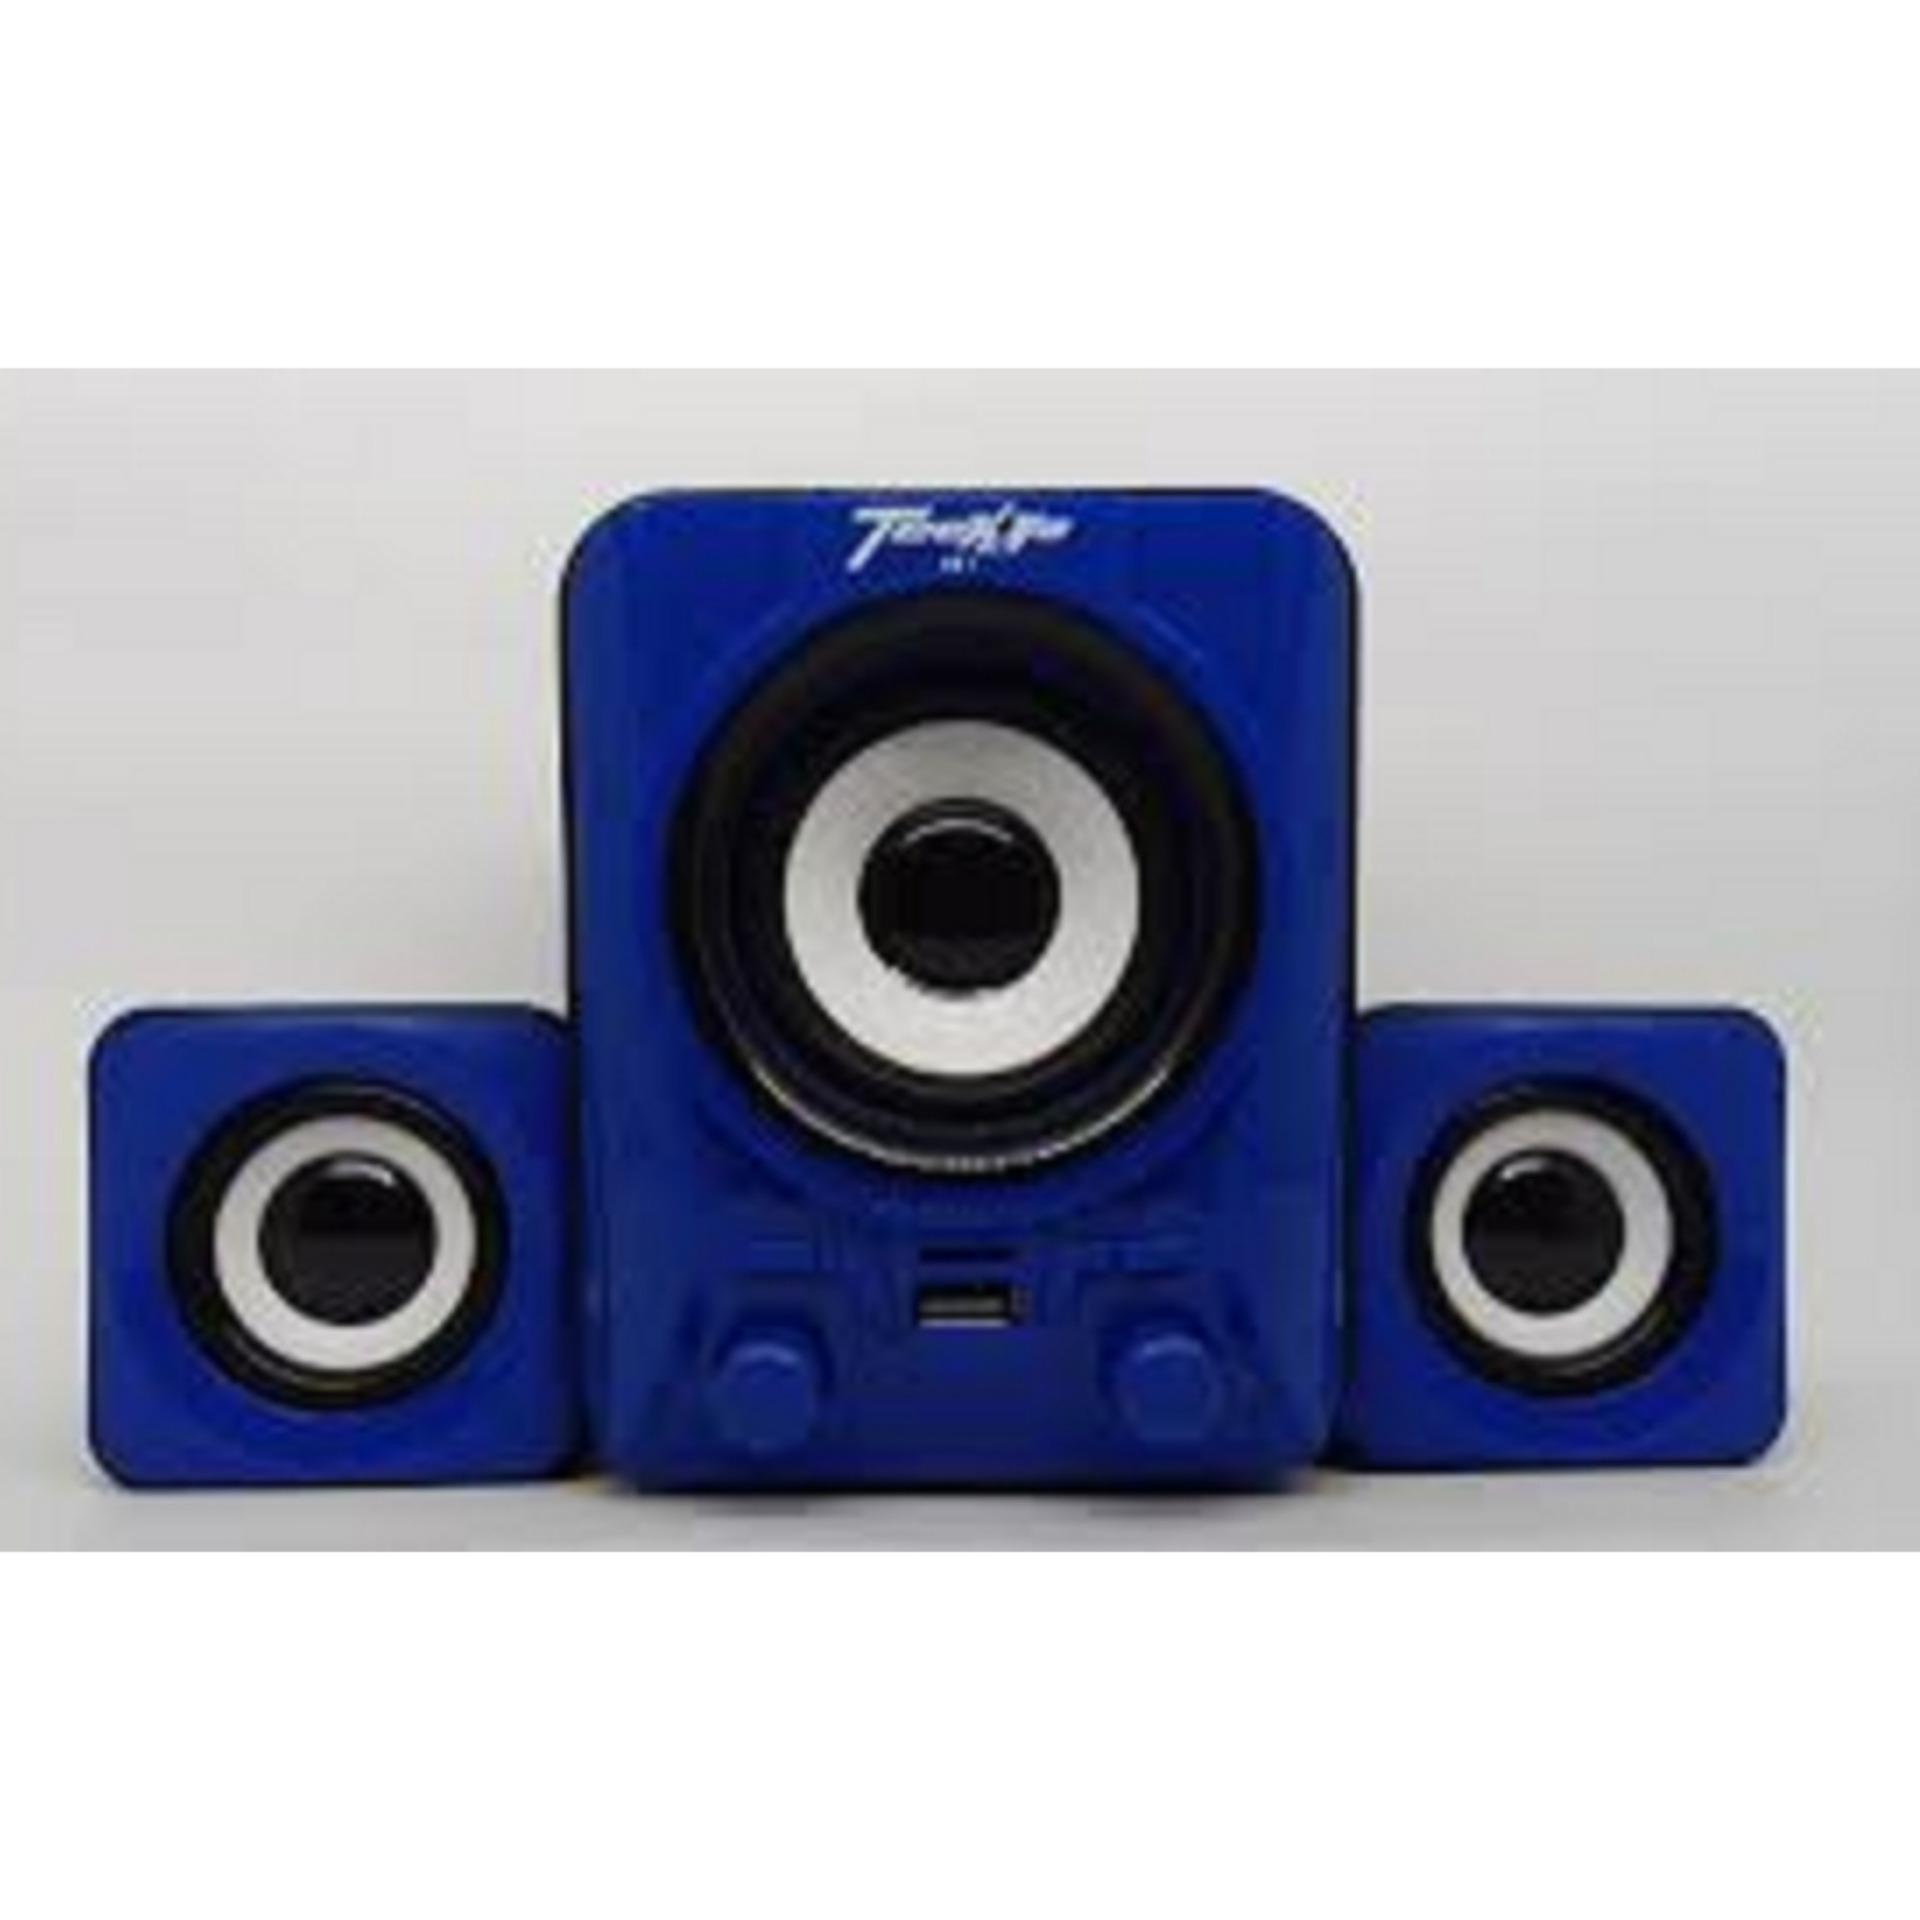 Speaker Teckyo Gmc Bluetooth 777b Speaker Usb Bluetooth Stereo Bass Source Jual Produk .